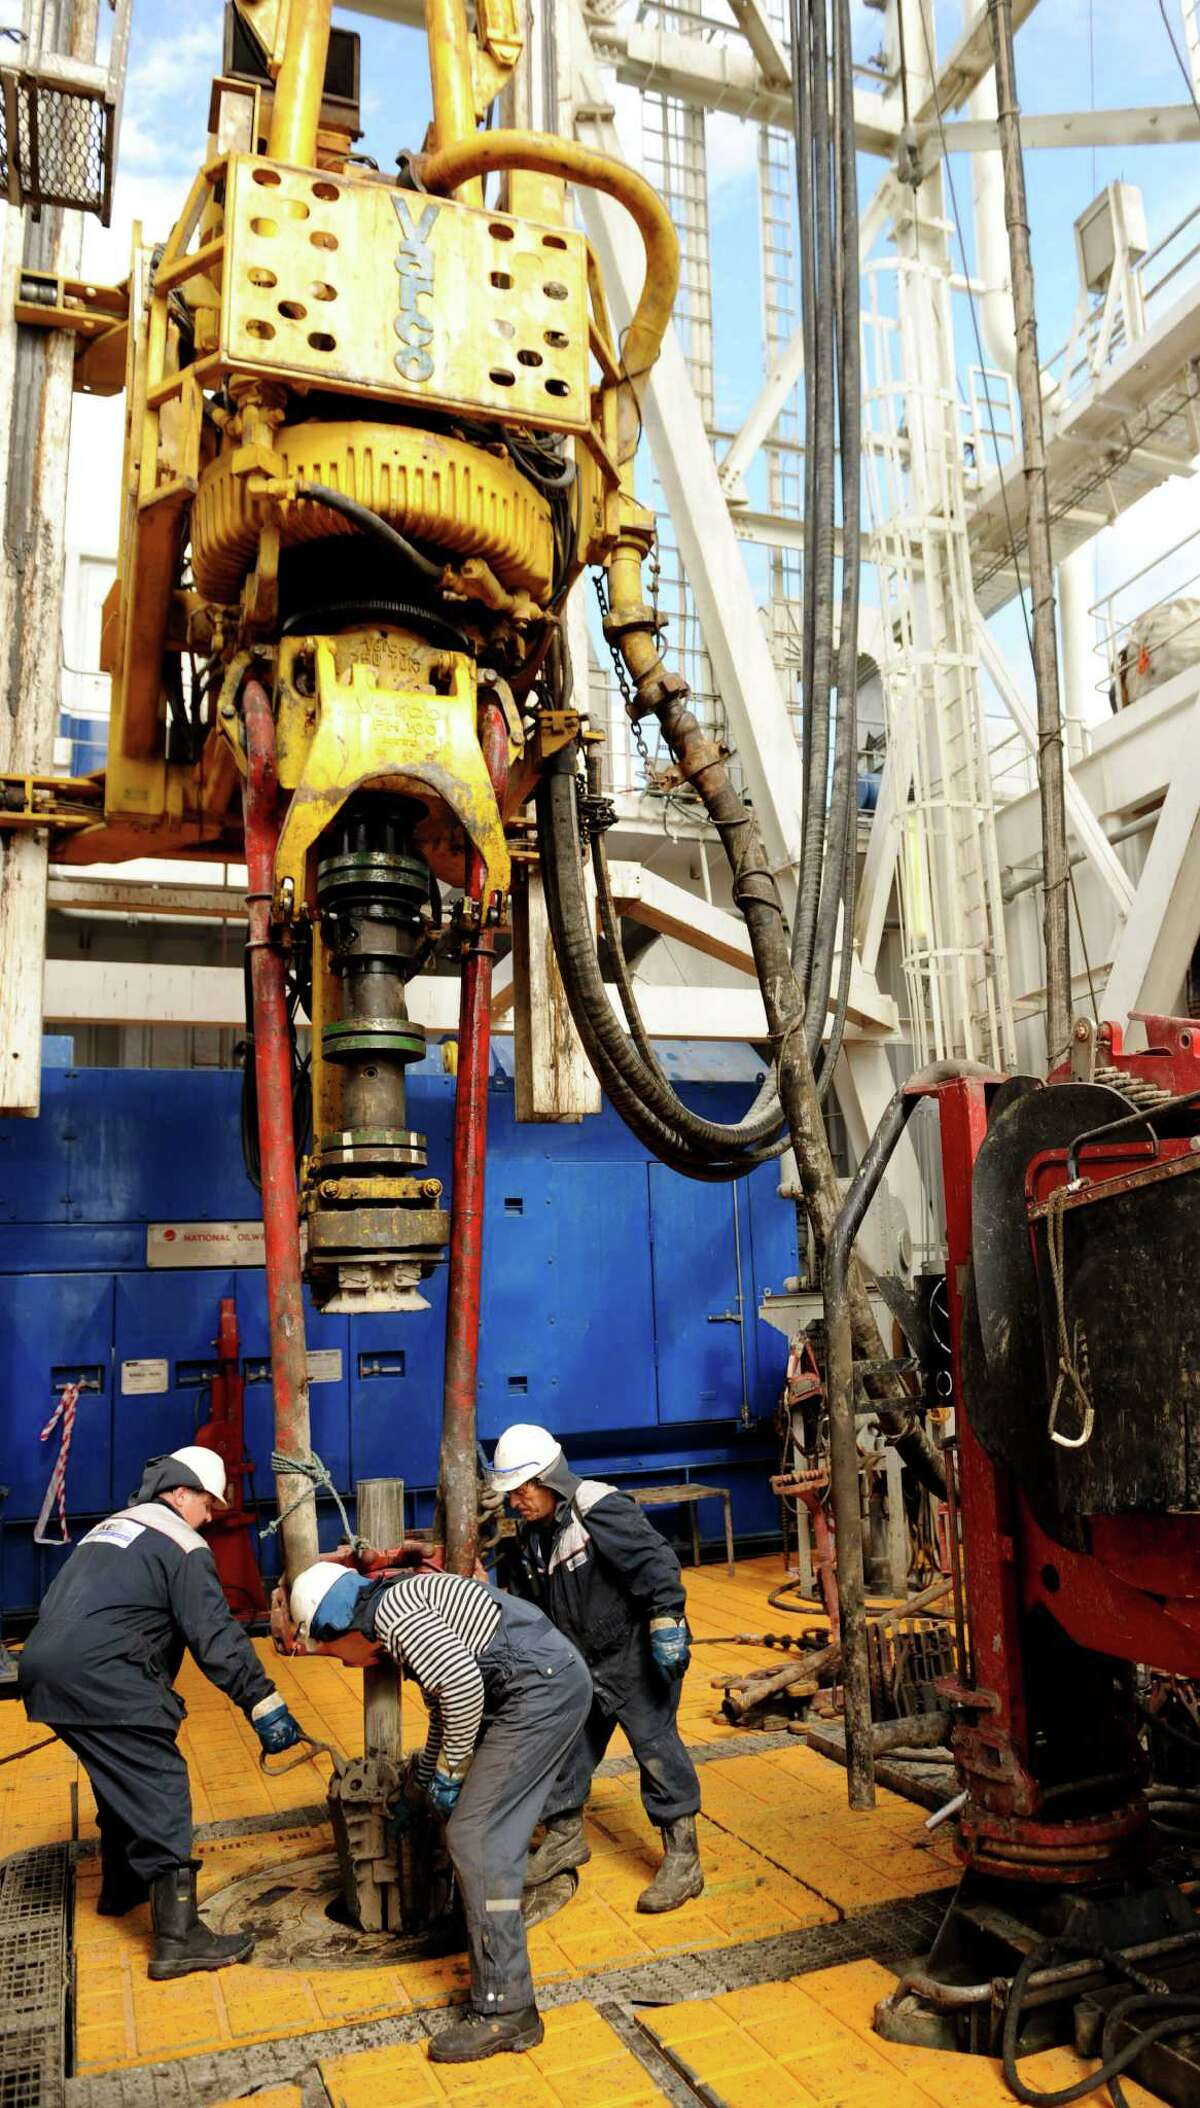 Drillers work an average of 59 hours a week. (Photo credit should read MIKHAIL MORDASOV/AFP/Getty Images)